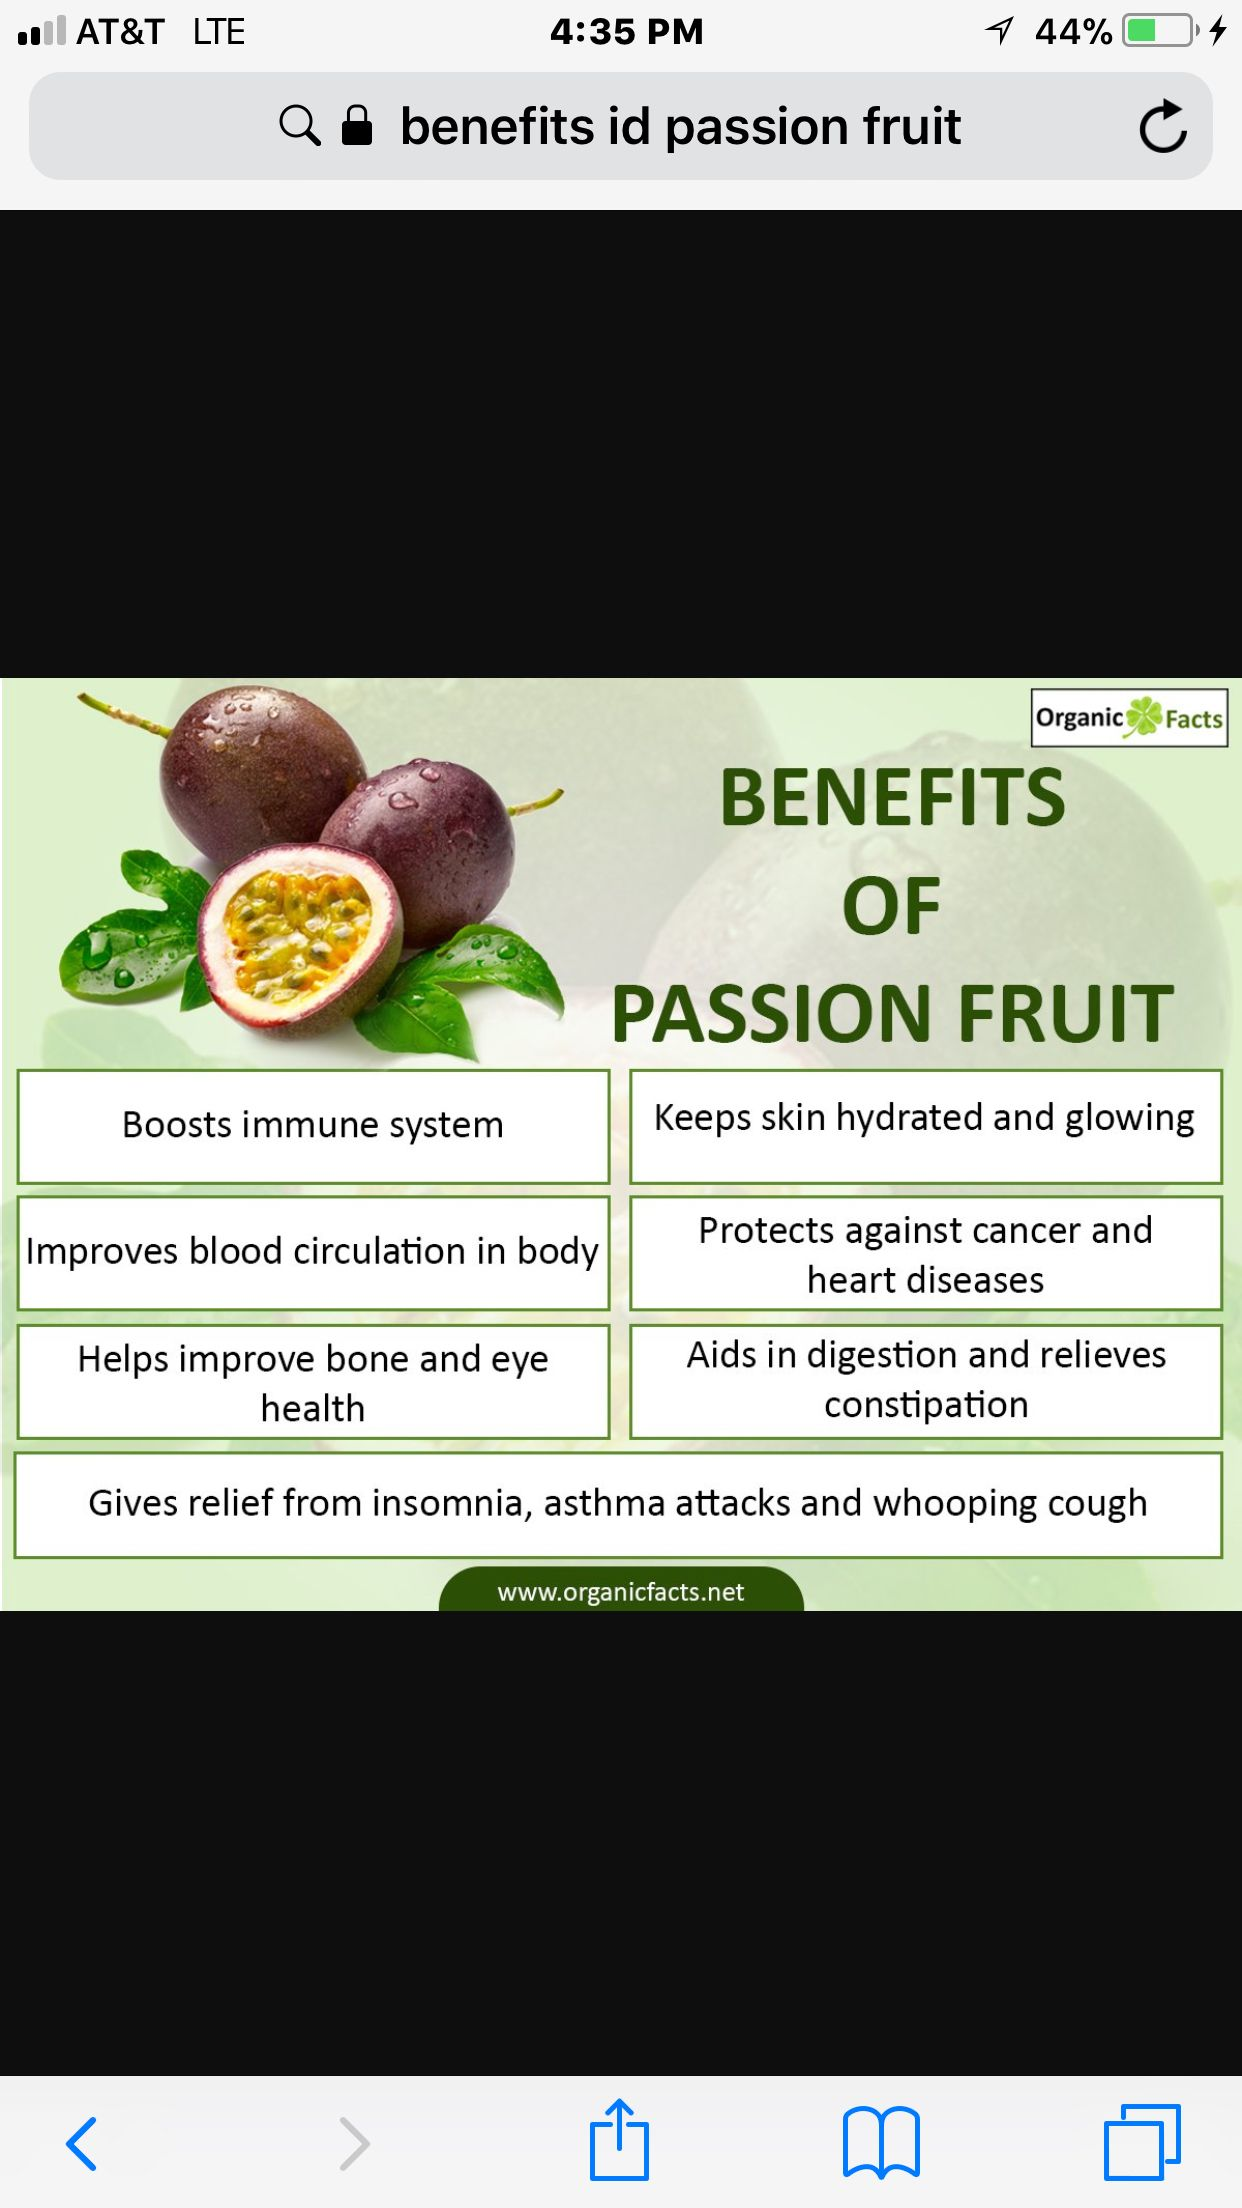 benefits of passion fruit. i've had passion fruit tea and it